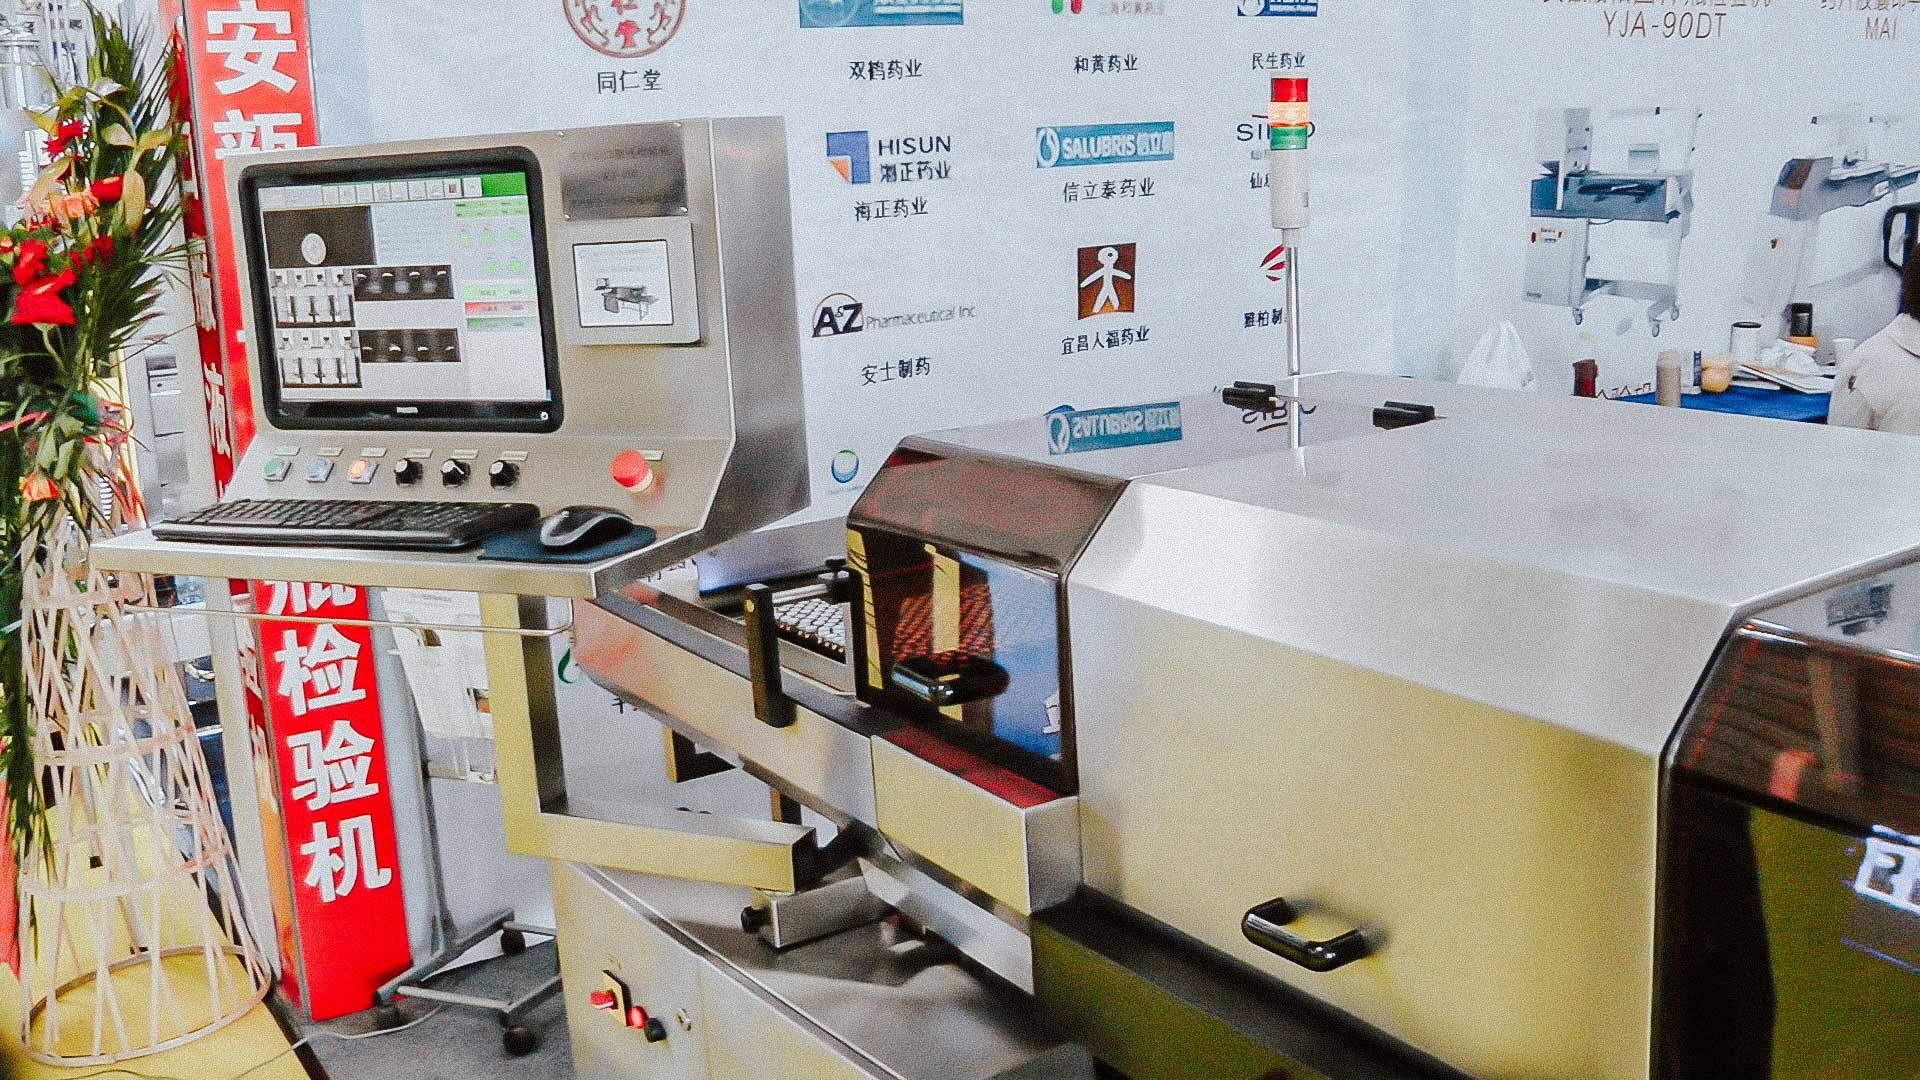 Automatic machine visual quality control of penicillin vials and ampoules